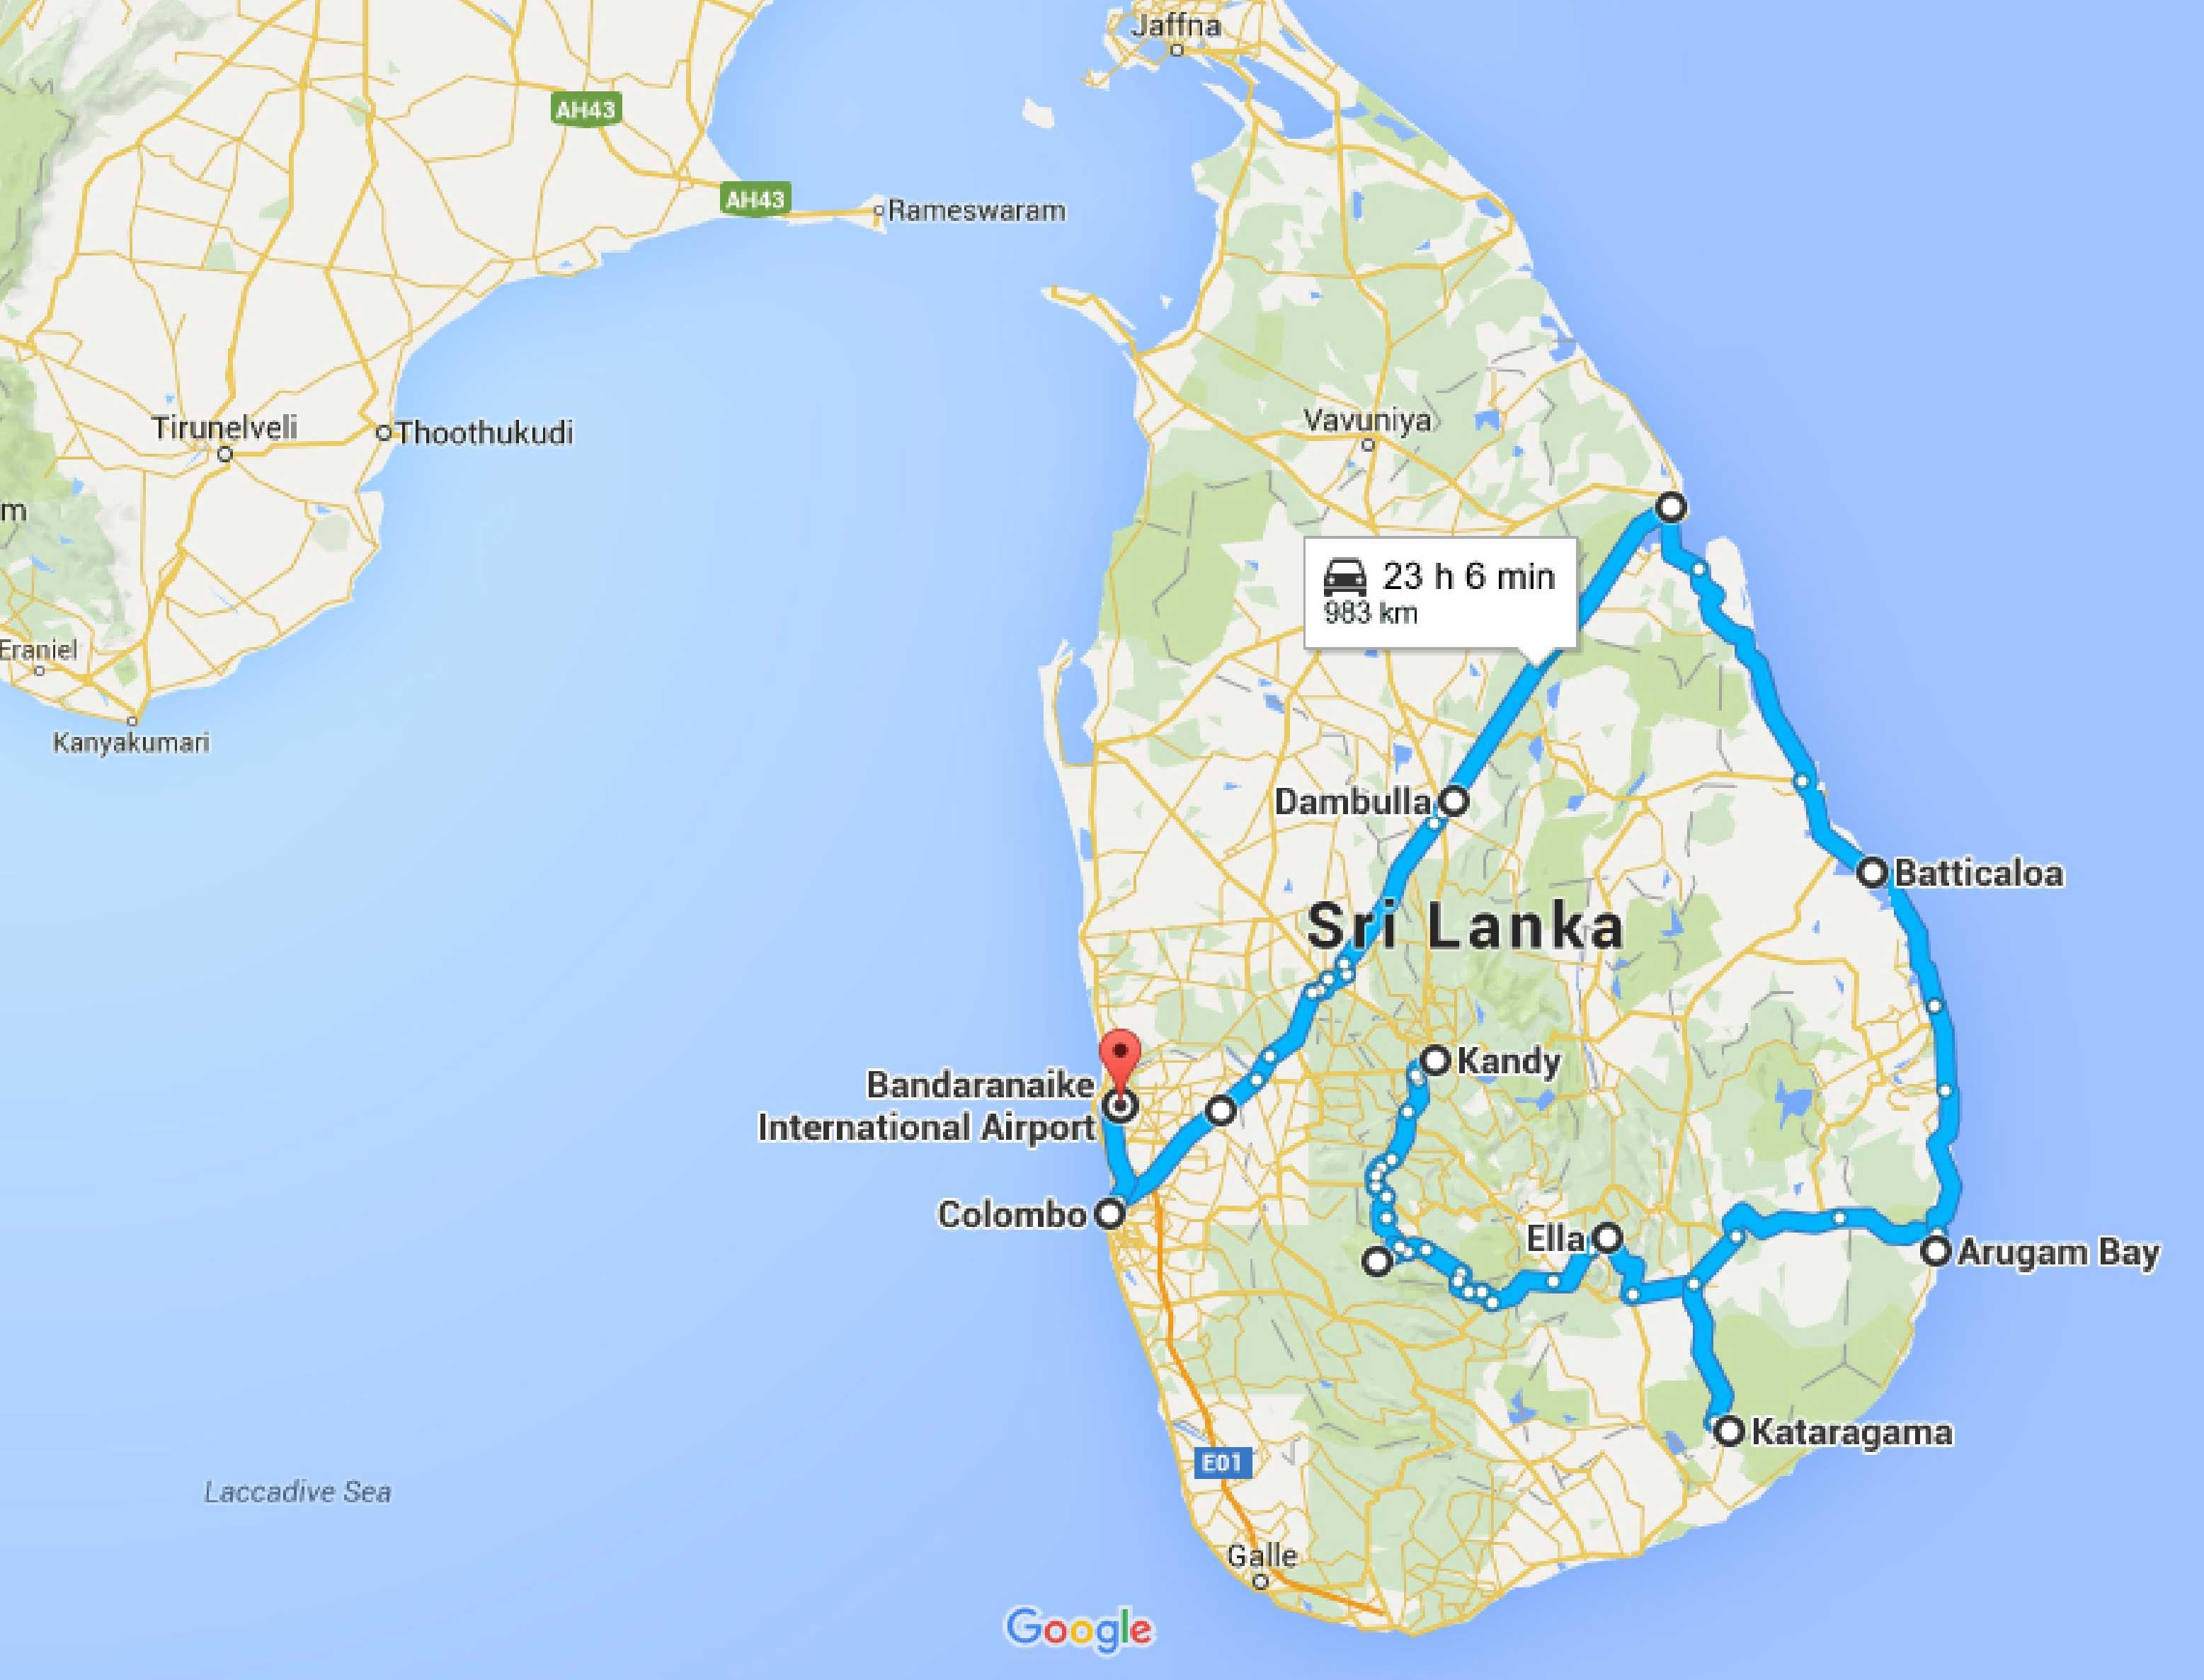 30 days in Sri Lanka: maps, costs and itinerary